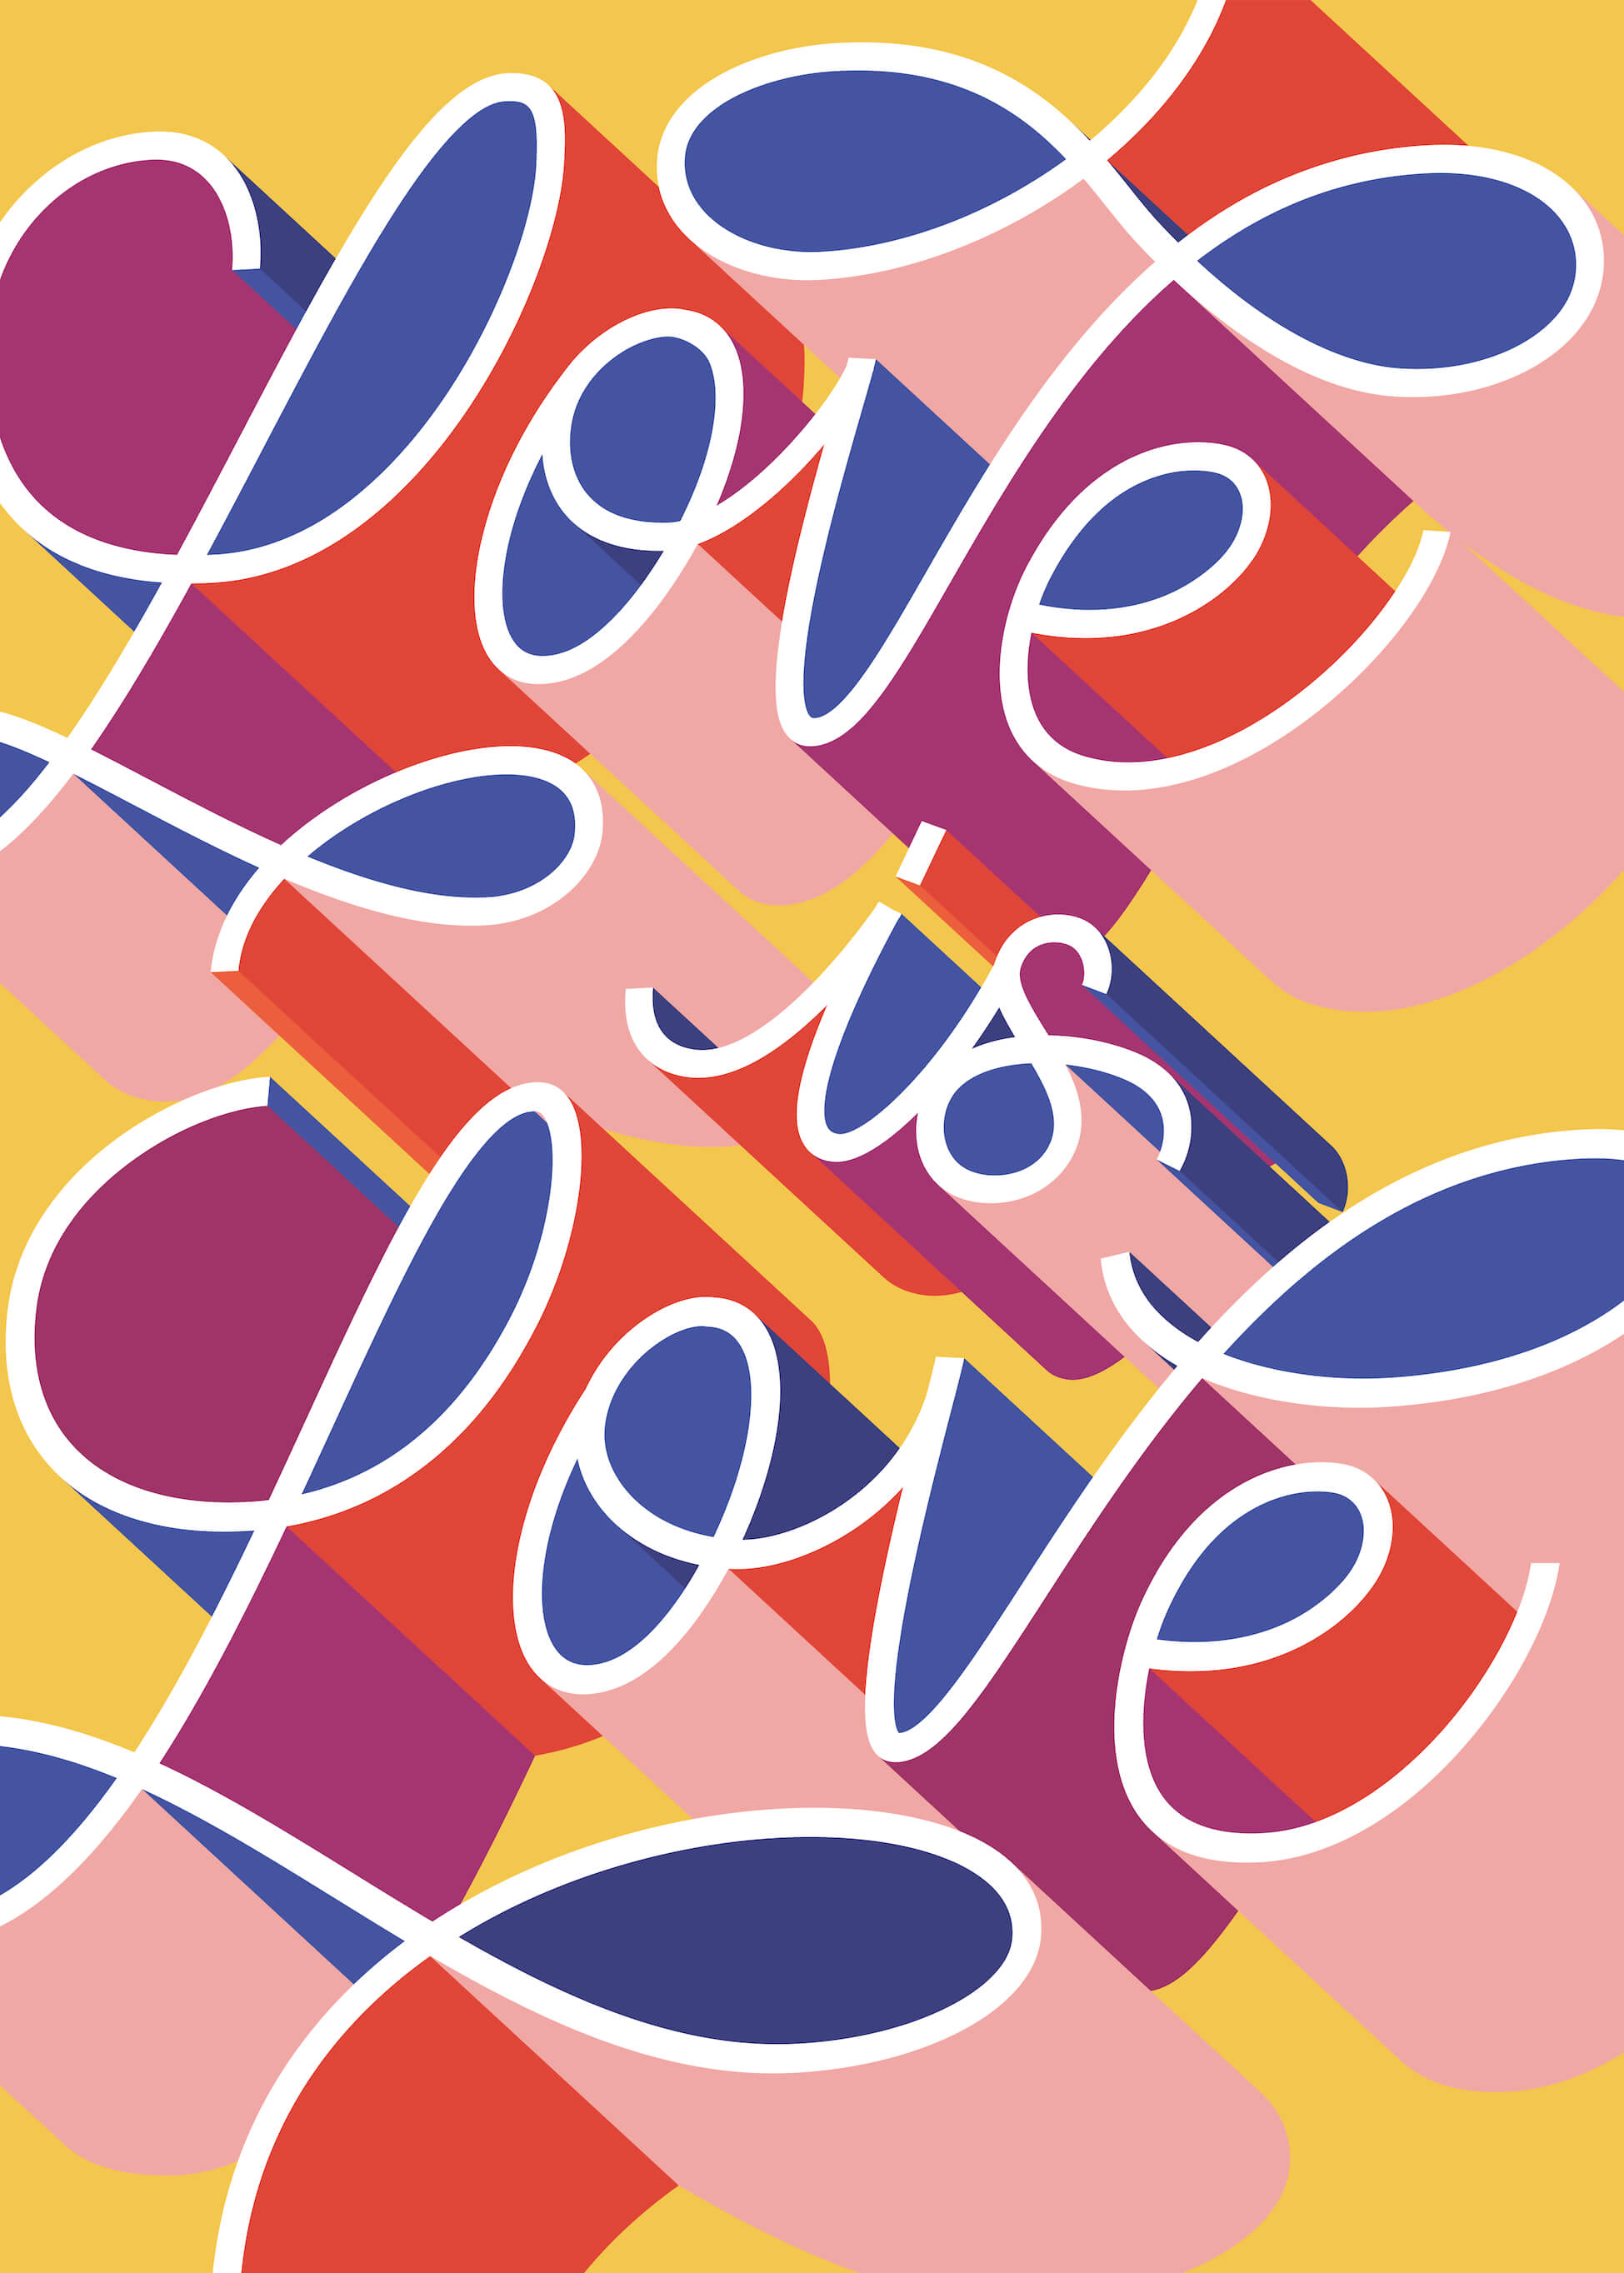 Love Is Love (lettering) main image